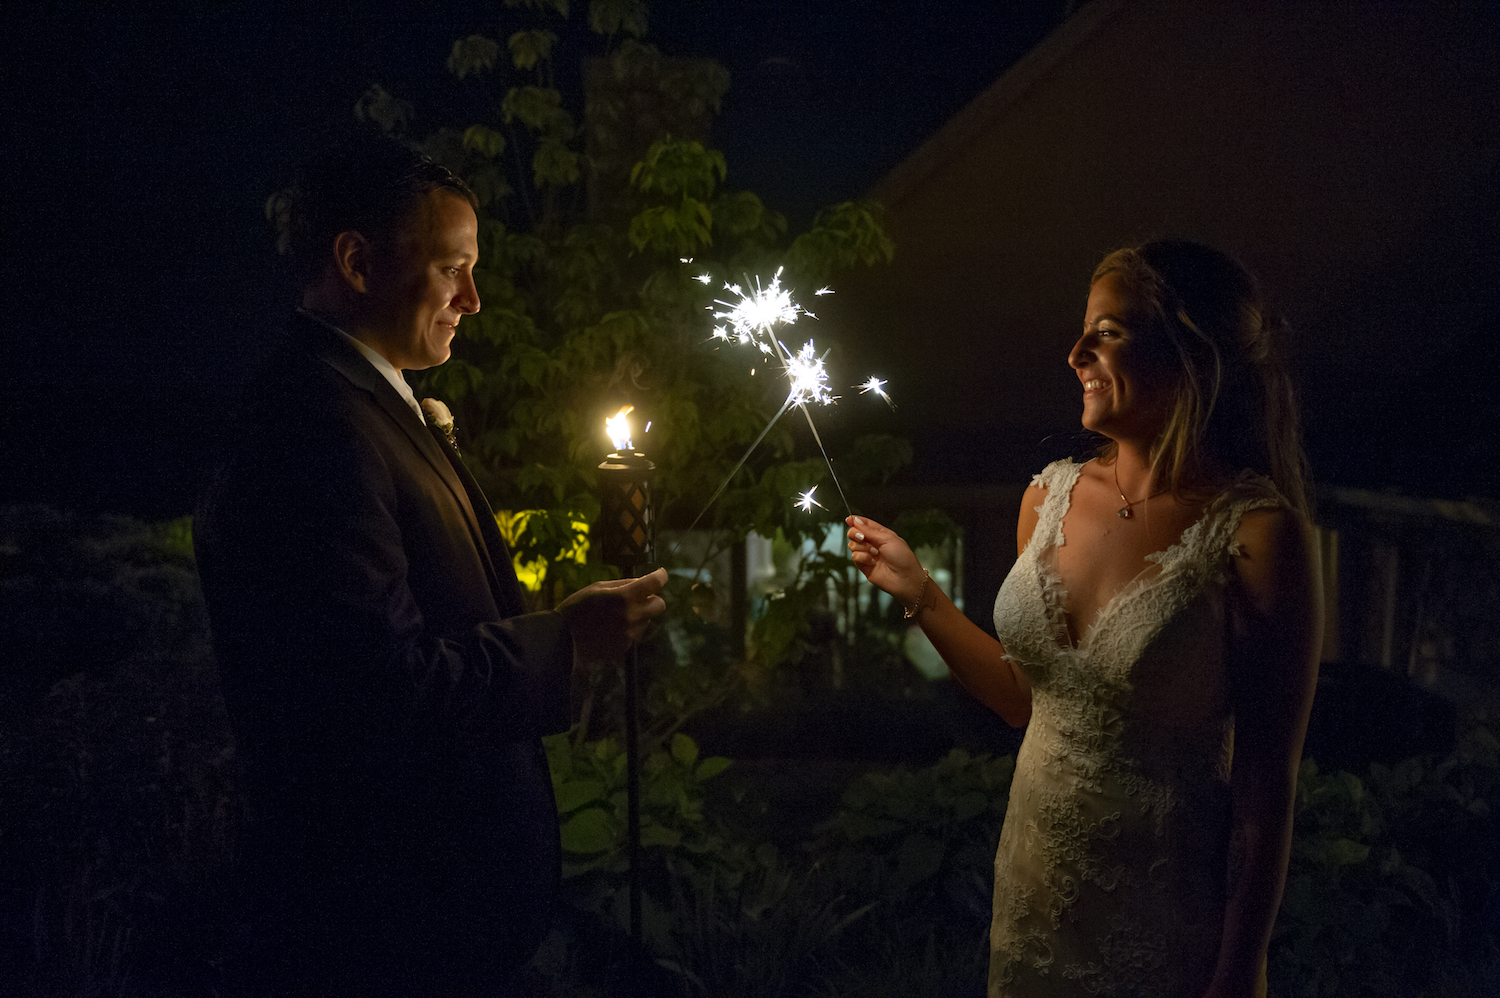 nj-wedding-photographers-nicole&mike-touching-sparklers-night